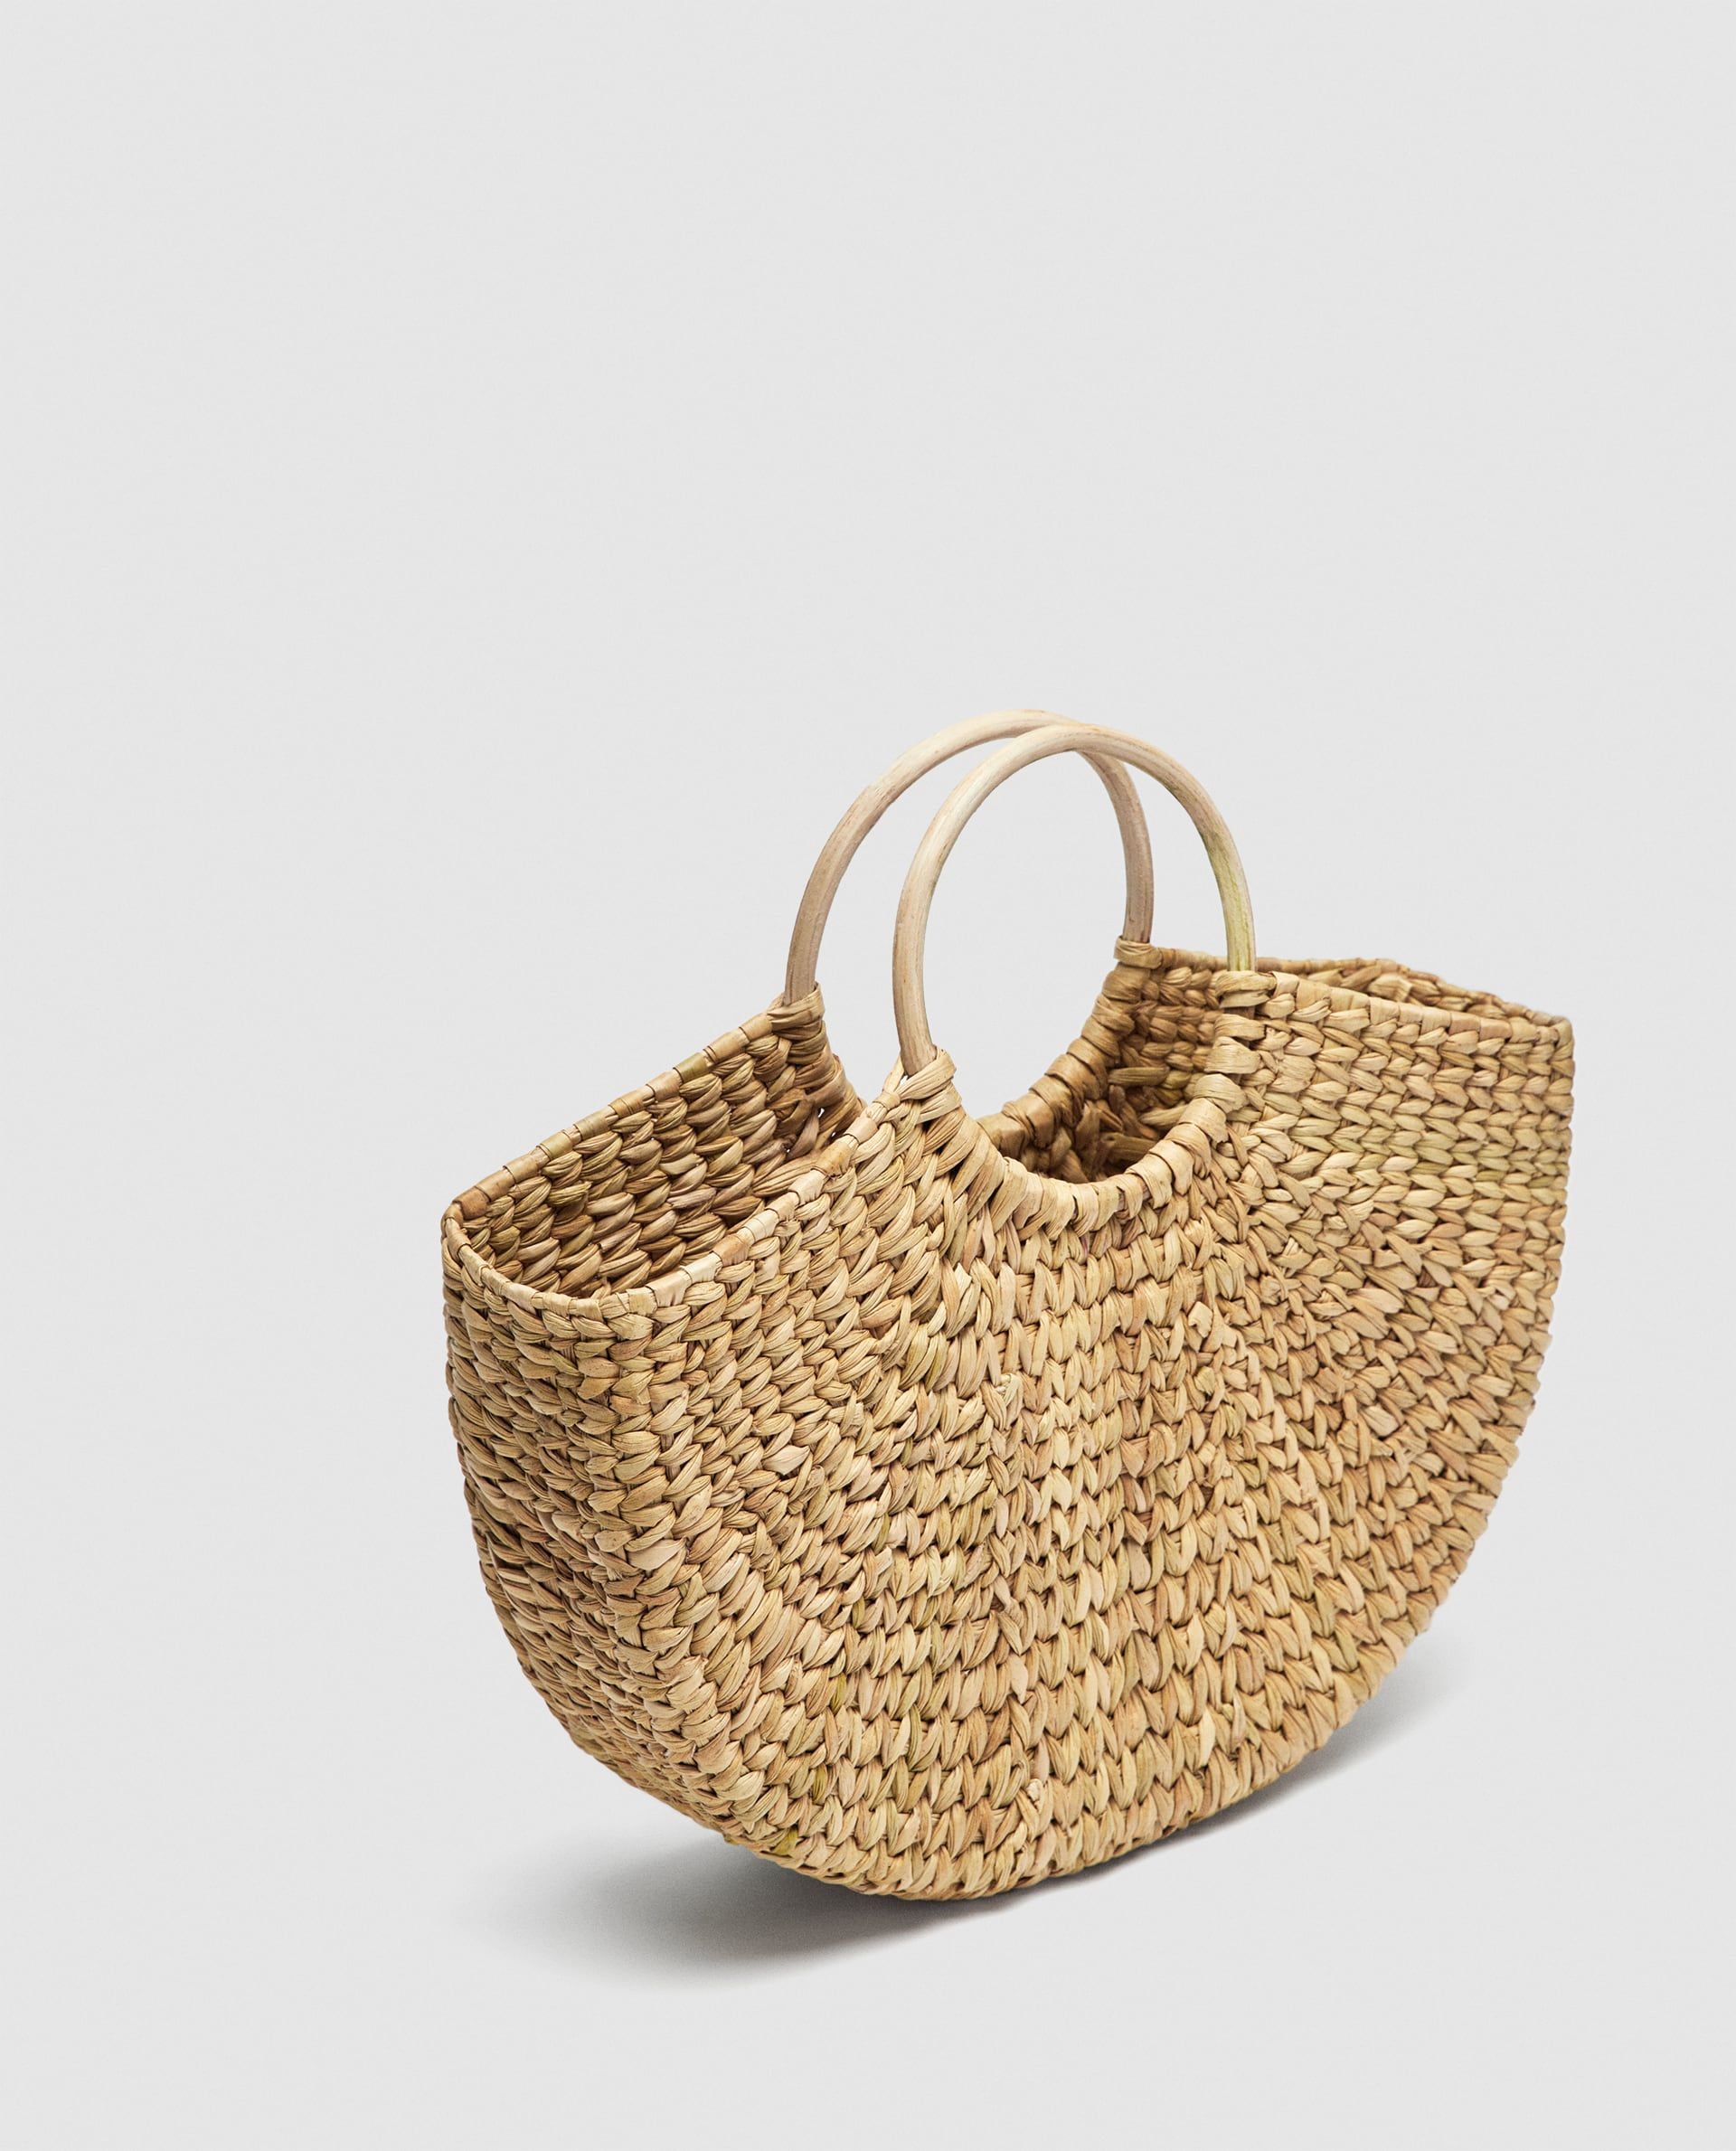 STRAW BAG WITH ROUNDED HANDLES BAGS WOMAN | ZARA United